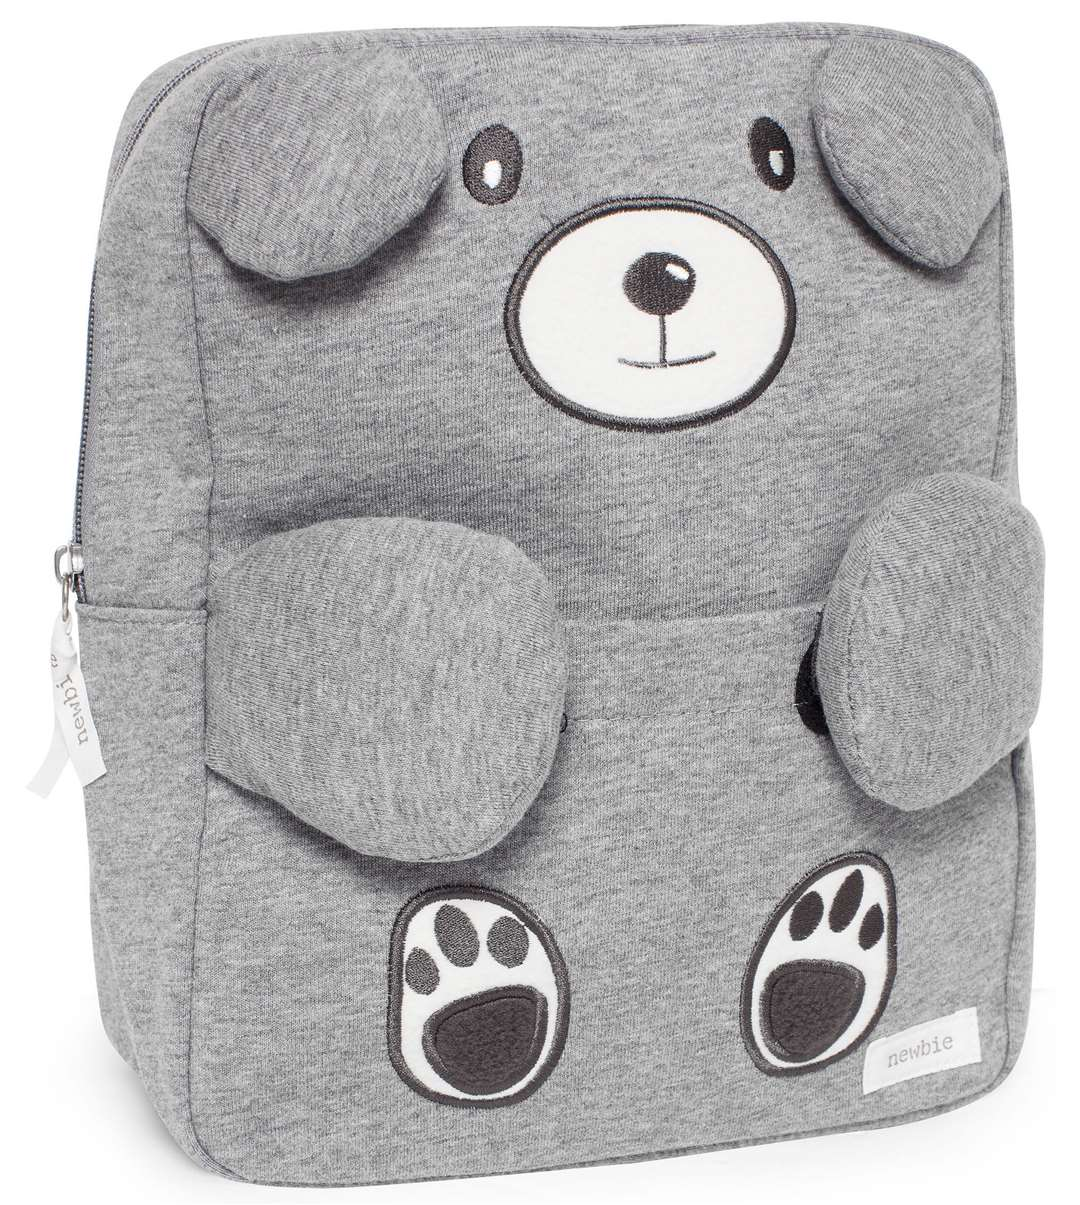 We totally love this bear backpack from Newbie